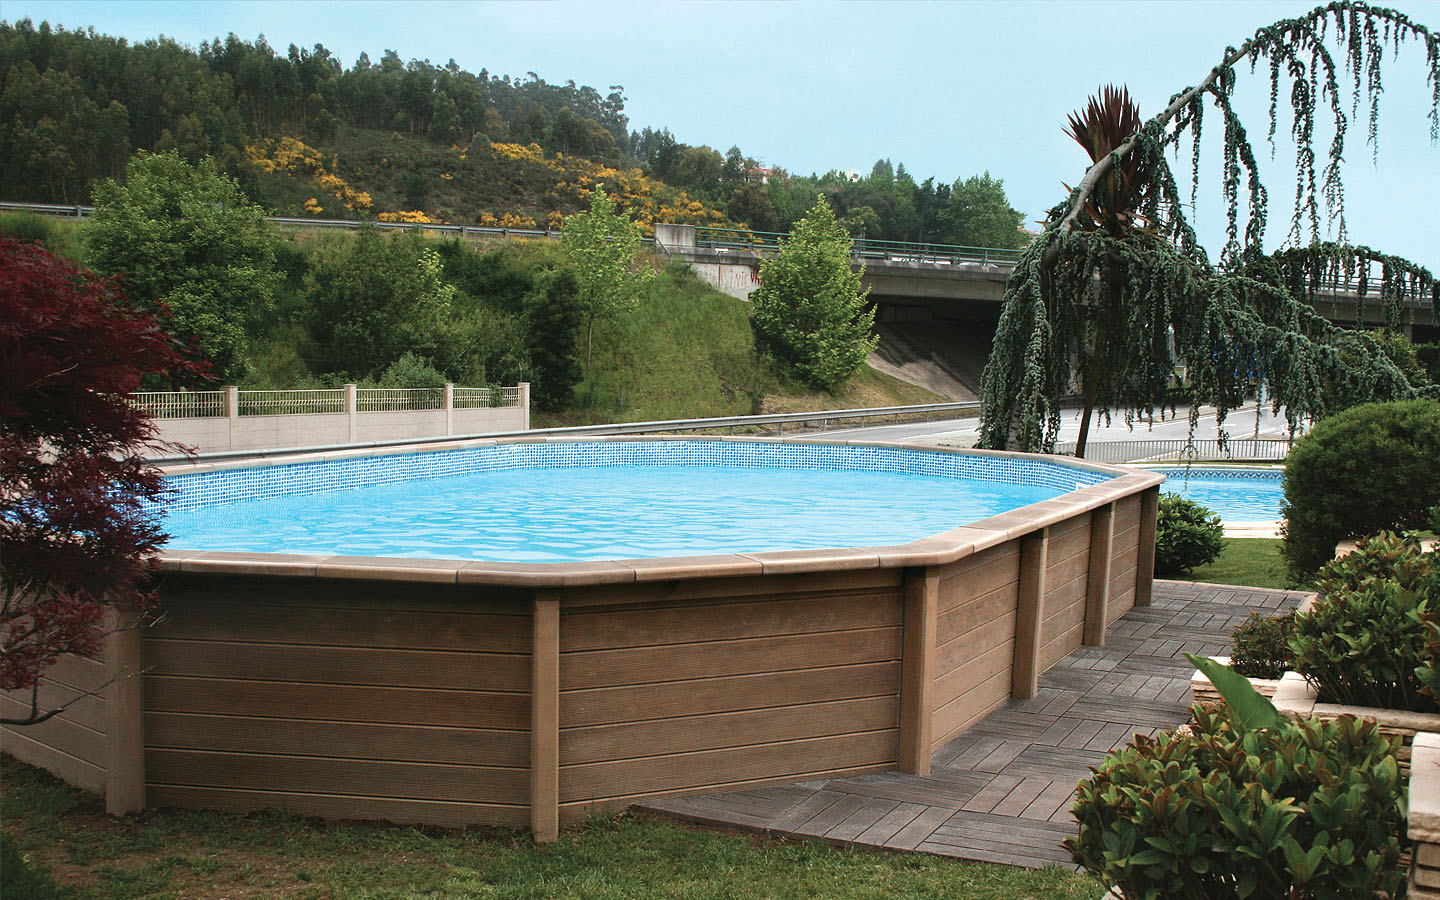 Piscinas naturalis by rp industries for Aspirateur piscine leroy merlin